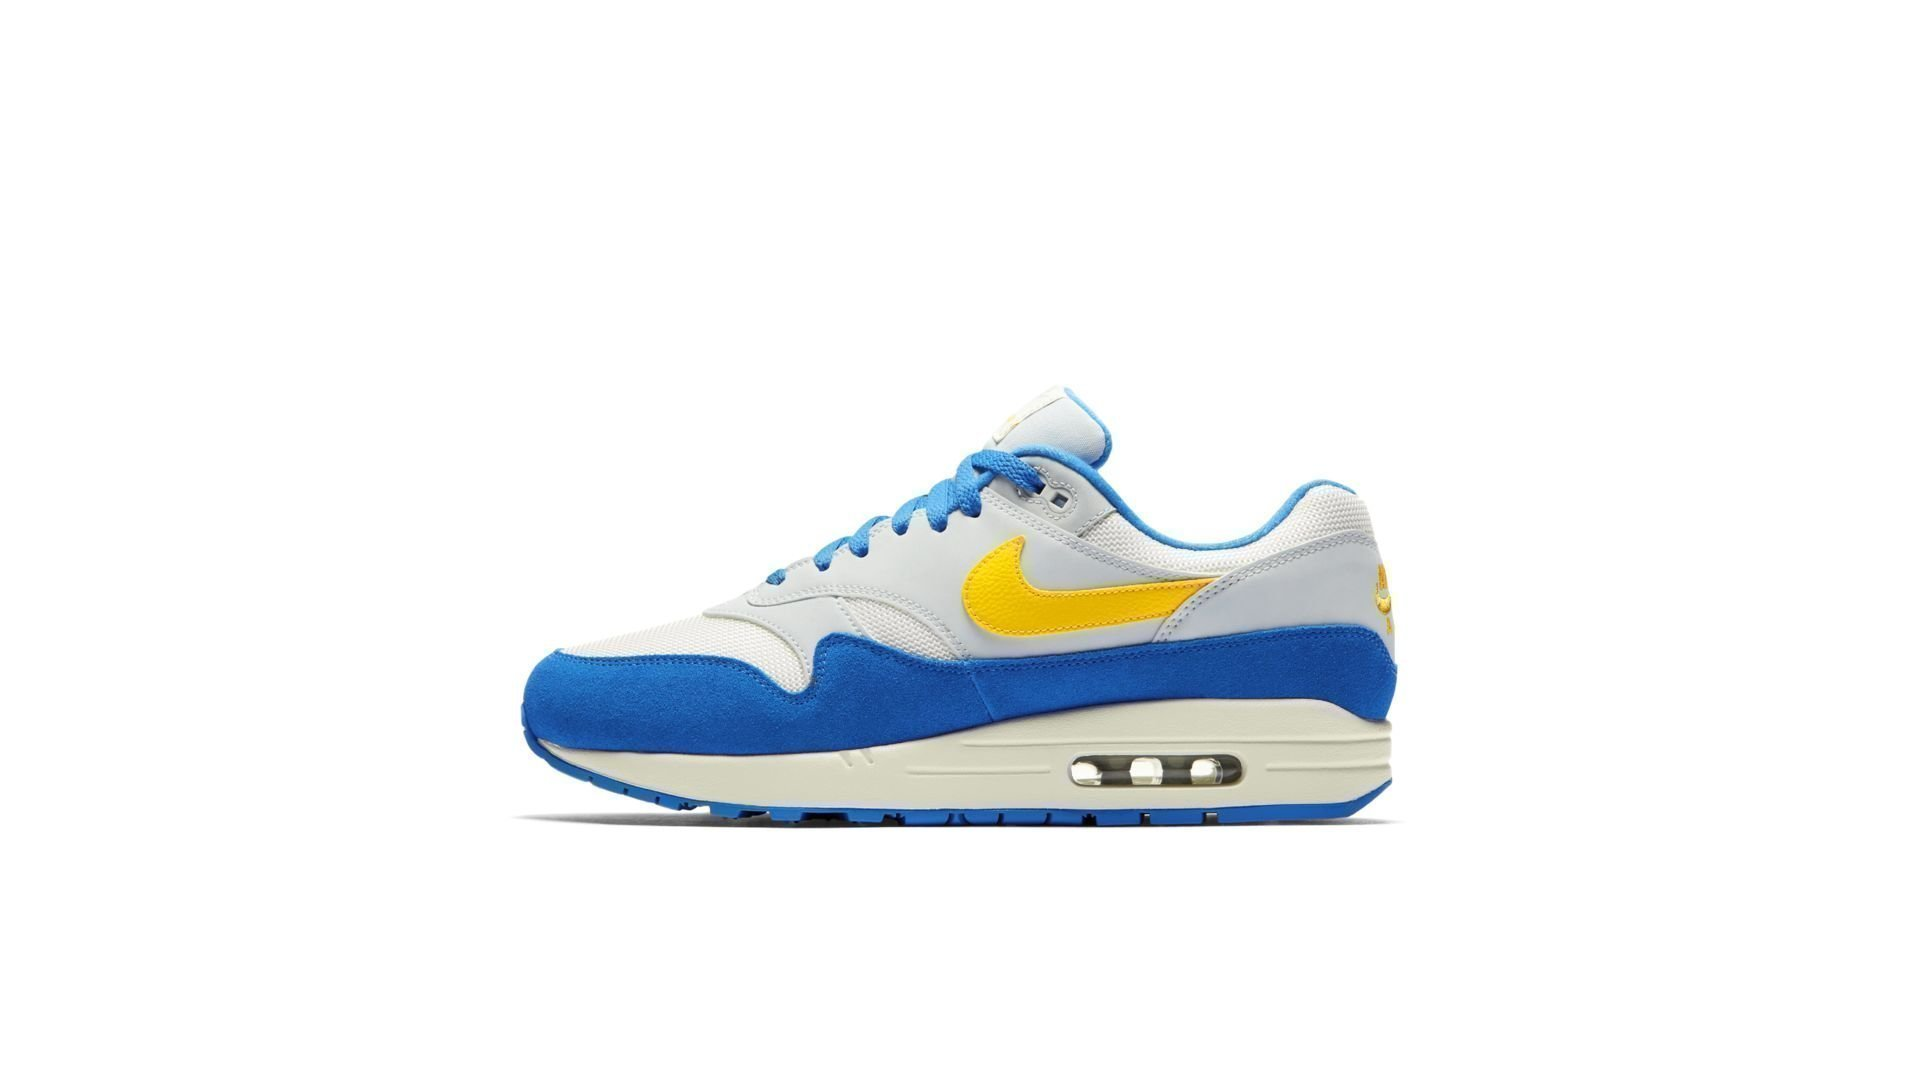 Nike Air Max 1 'Amarillo' (AH8145-108)